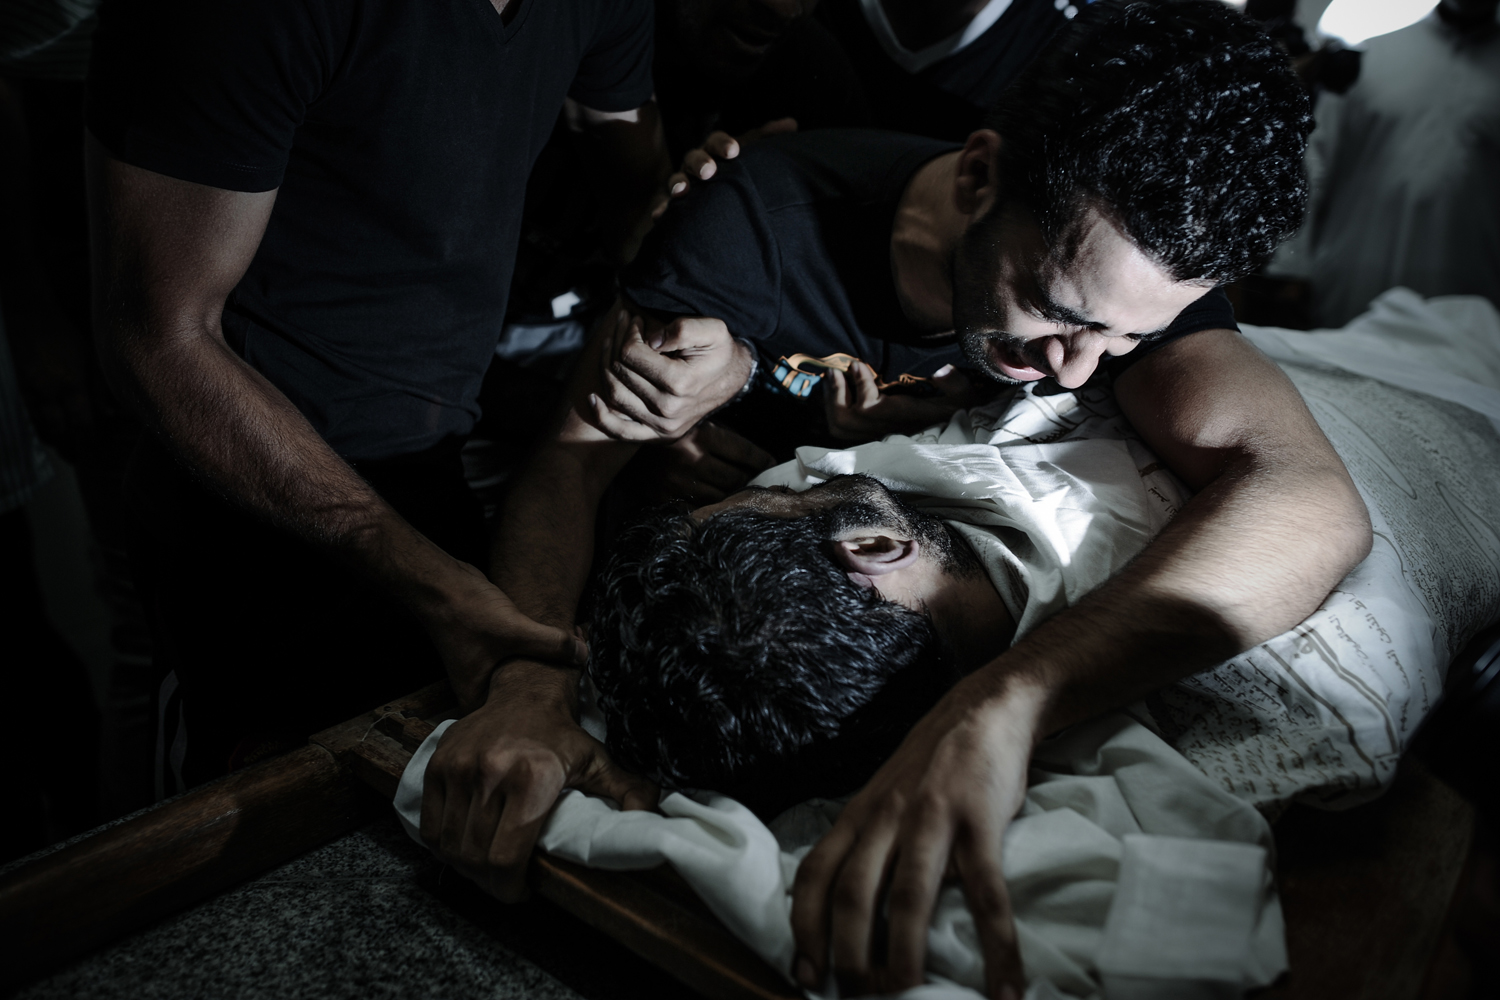 Oct. 12, 2013. The brother of Yussef al-Nashmi, who died in hospital the day before as he was detained by Bahraini authorities since August 17, mourns over his body during his funeral in the western Manama suburb of Jidd Hafs.